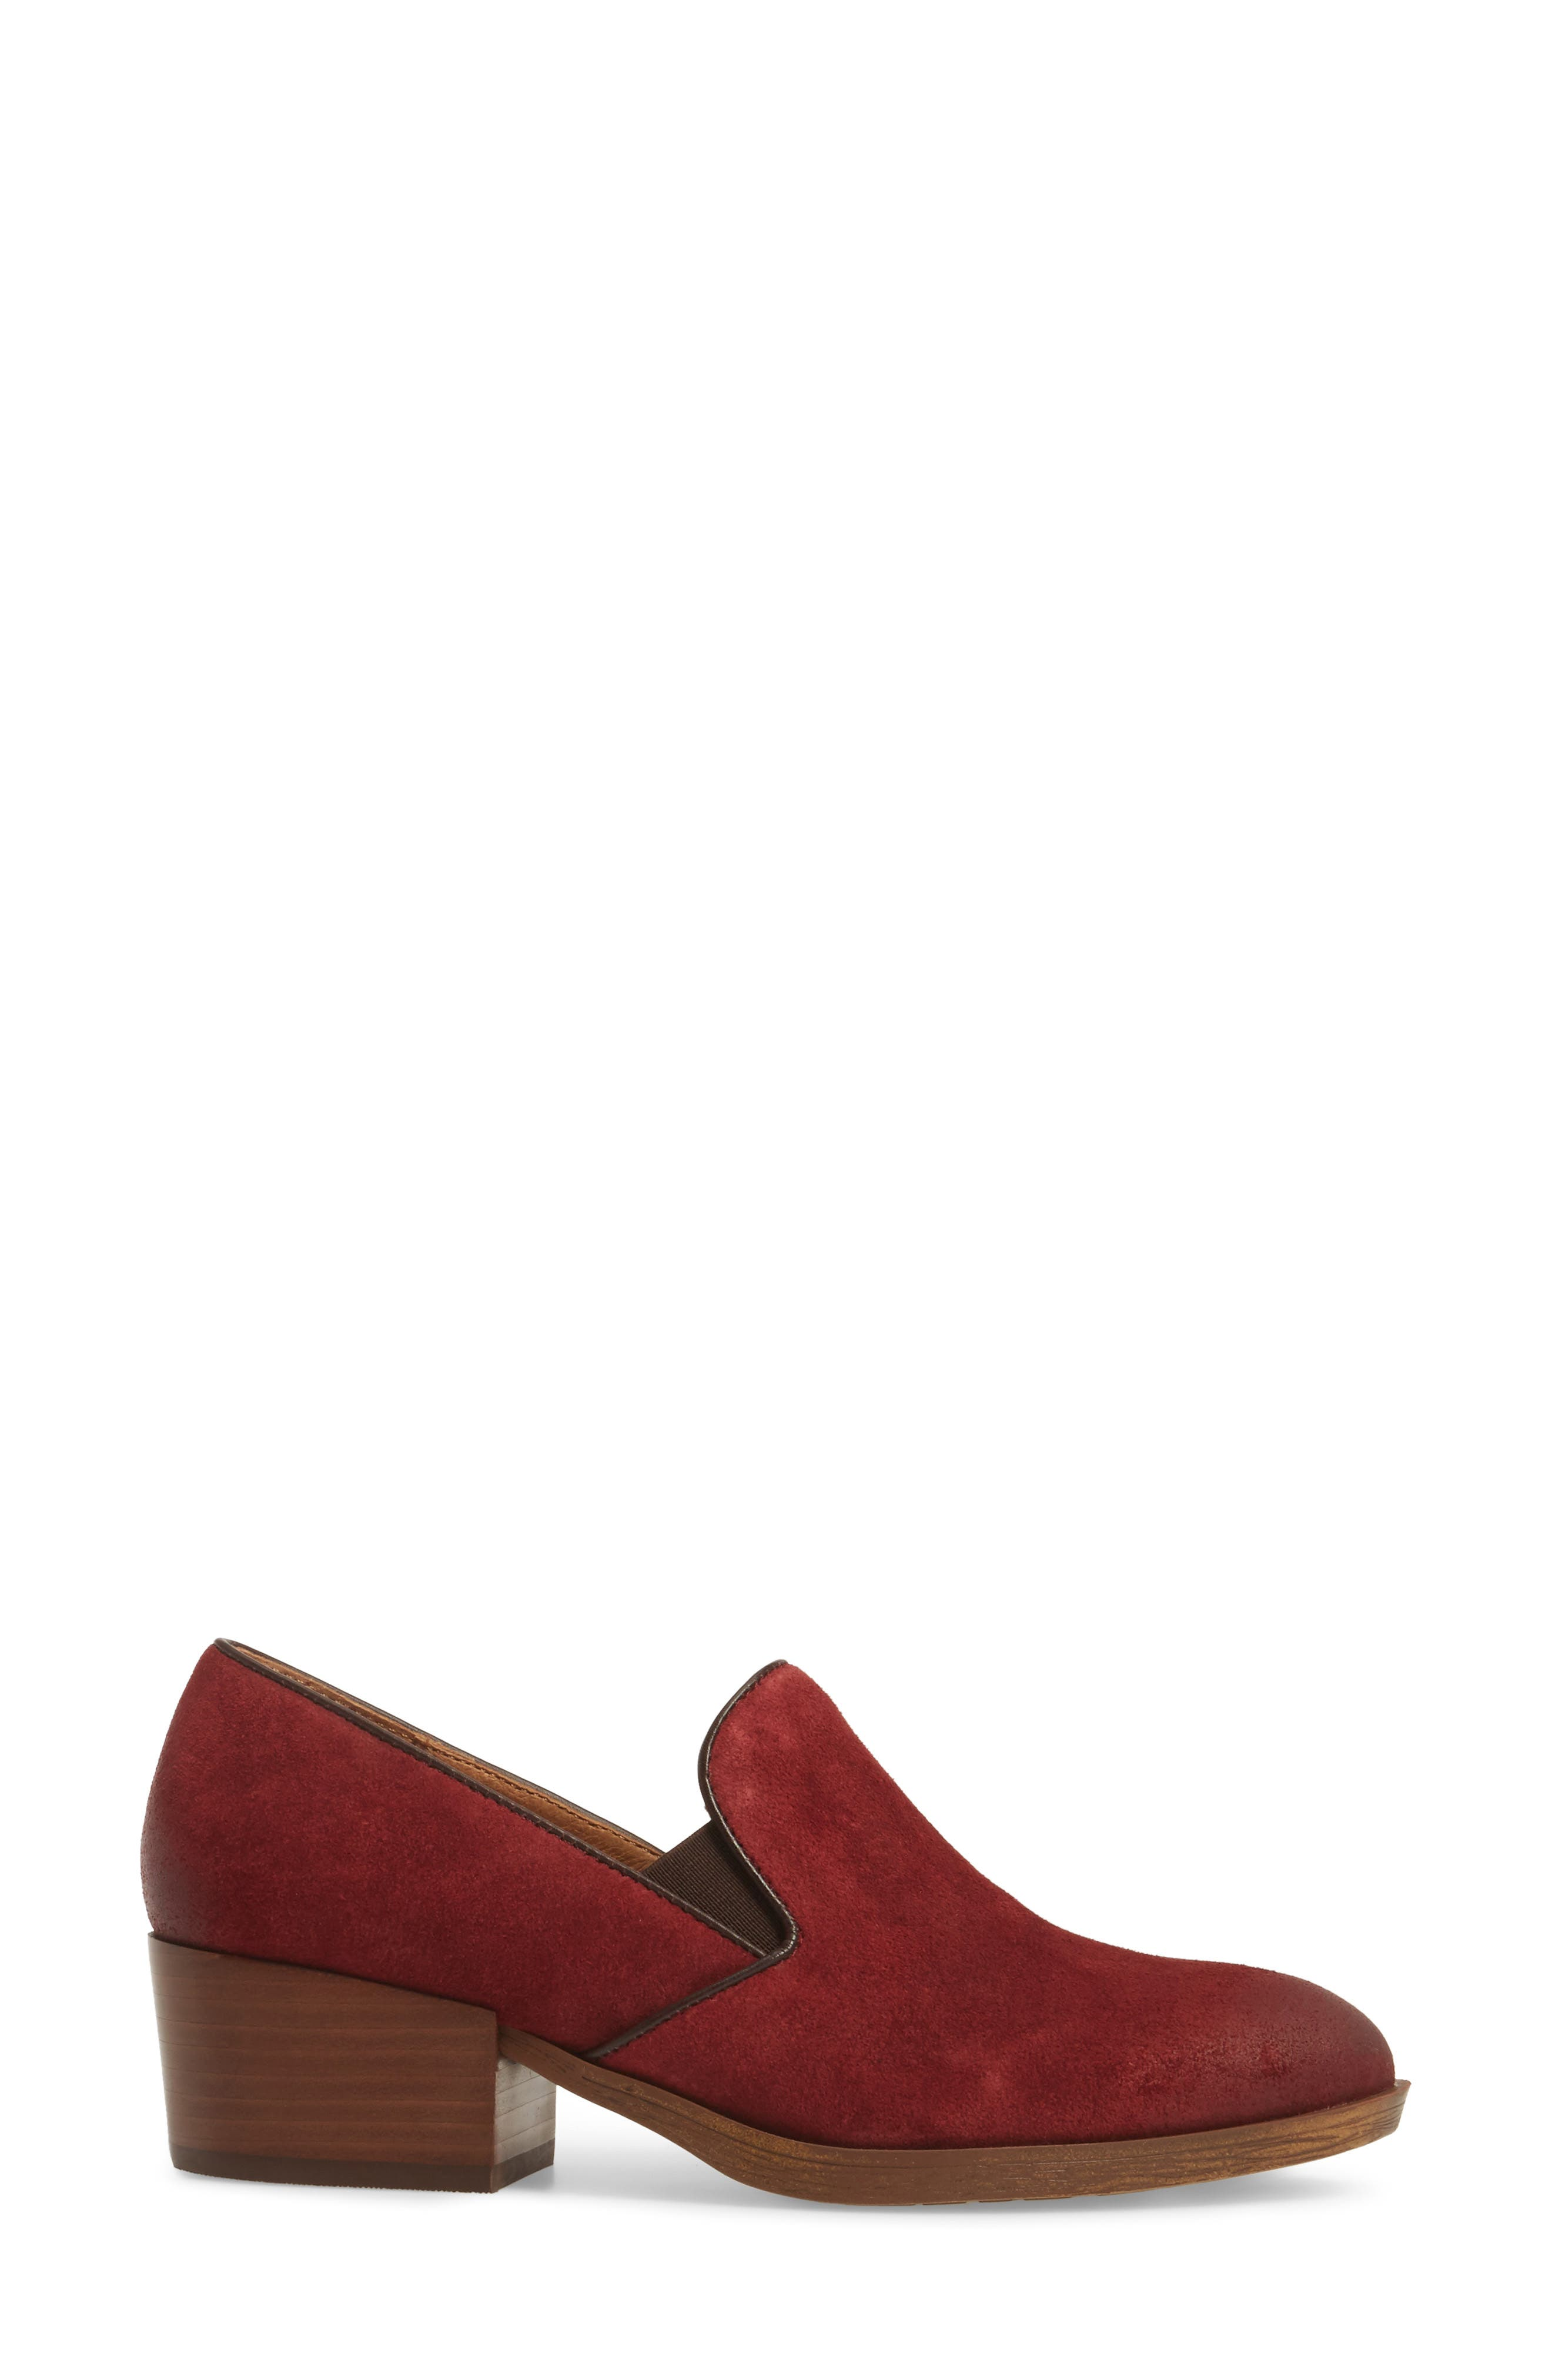 Velina Pump,                             Alternate thumbnail 3, color,                             Bordo Suede